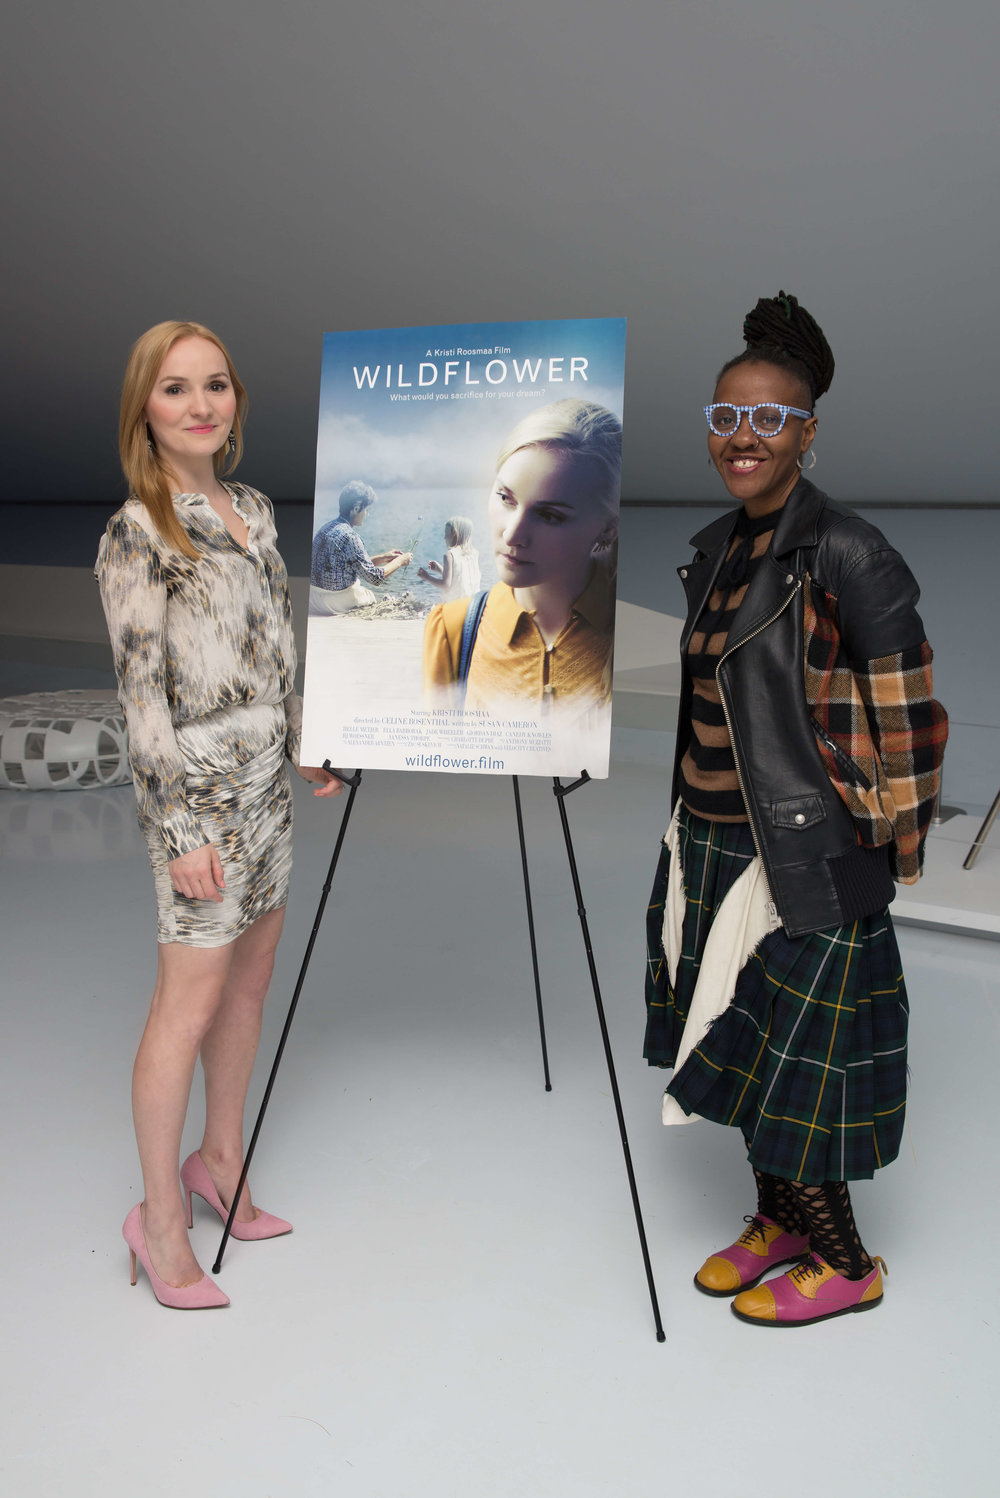 Thank you New York Women in Film & Television's Easmanie Michel for organizing such a memorable night!